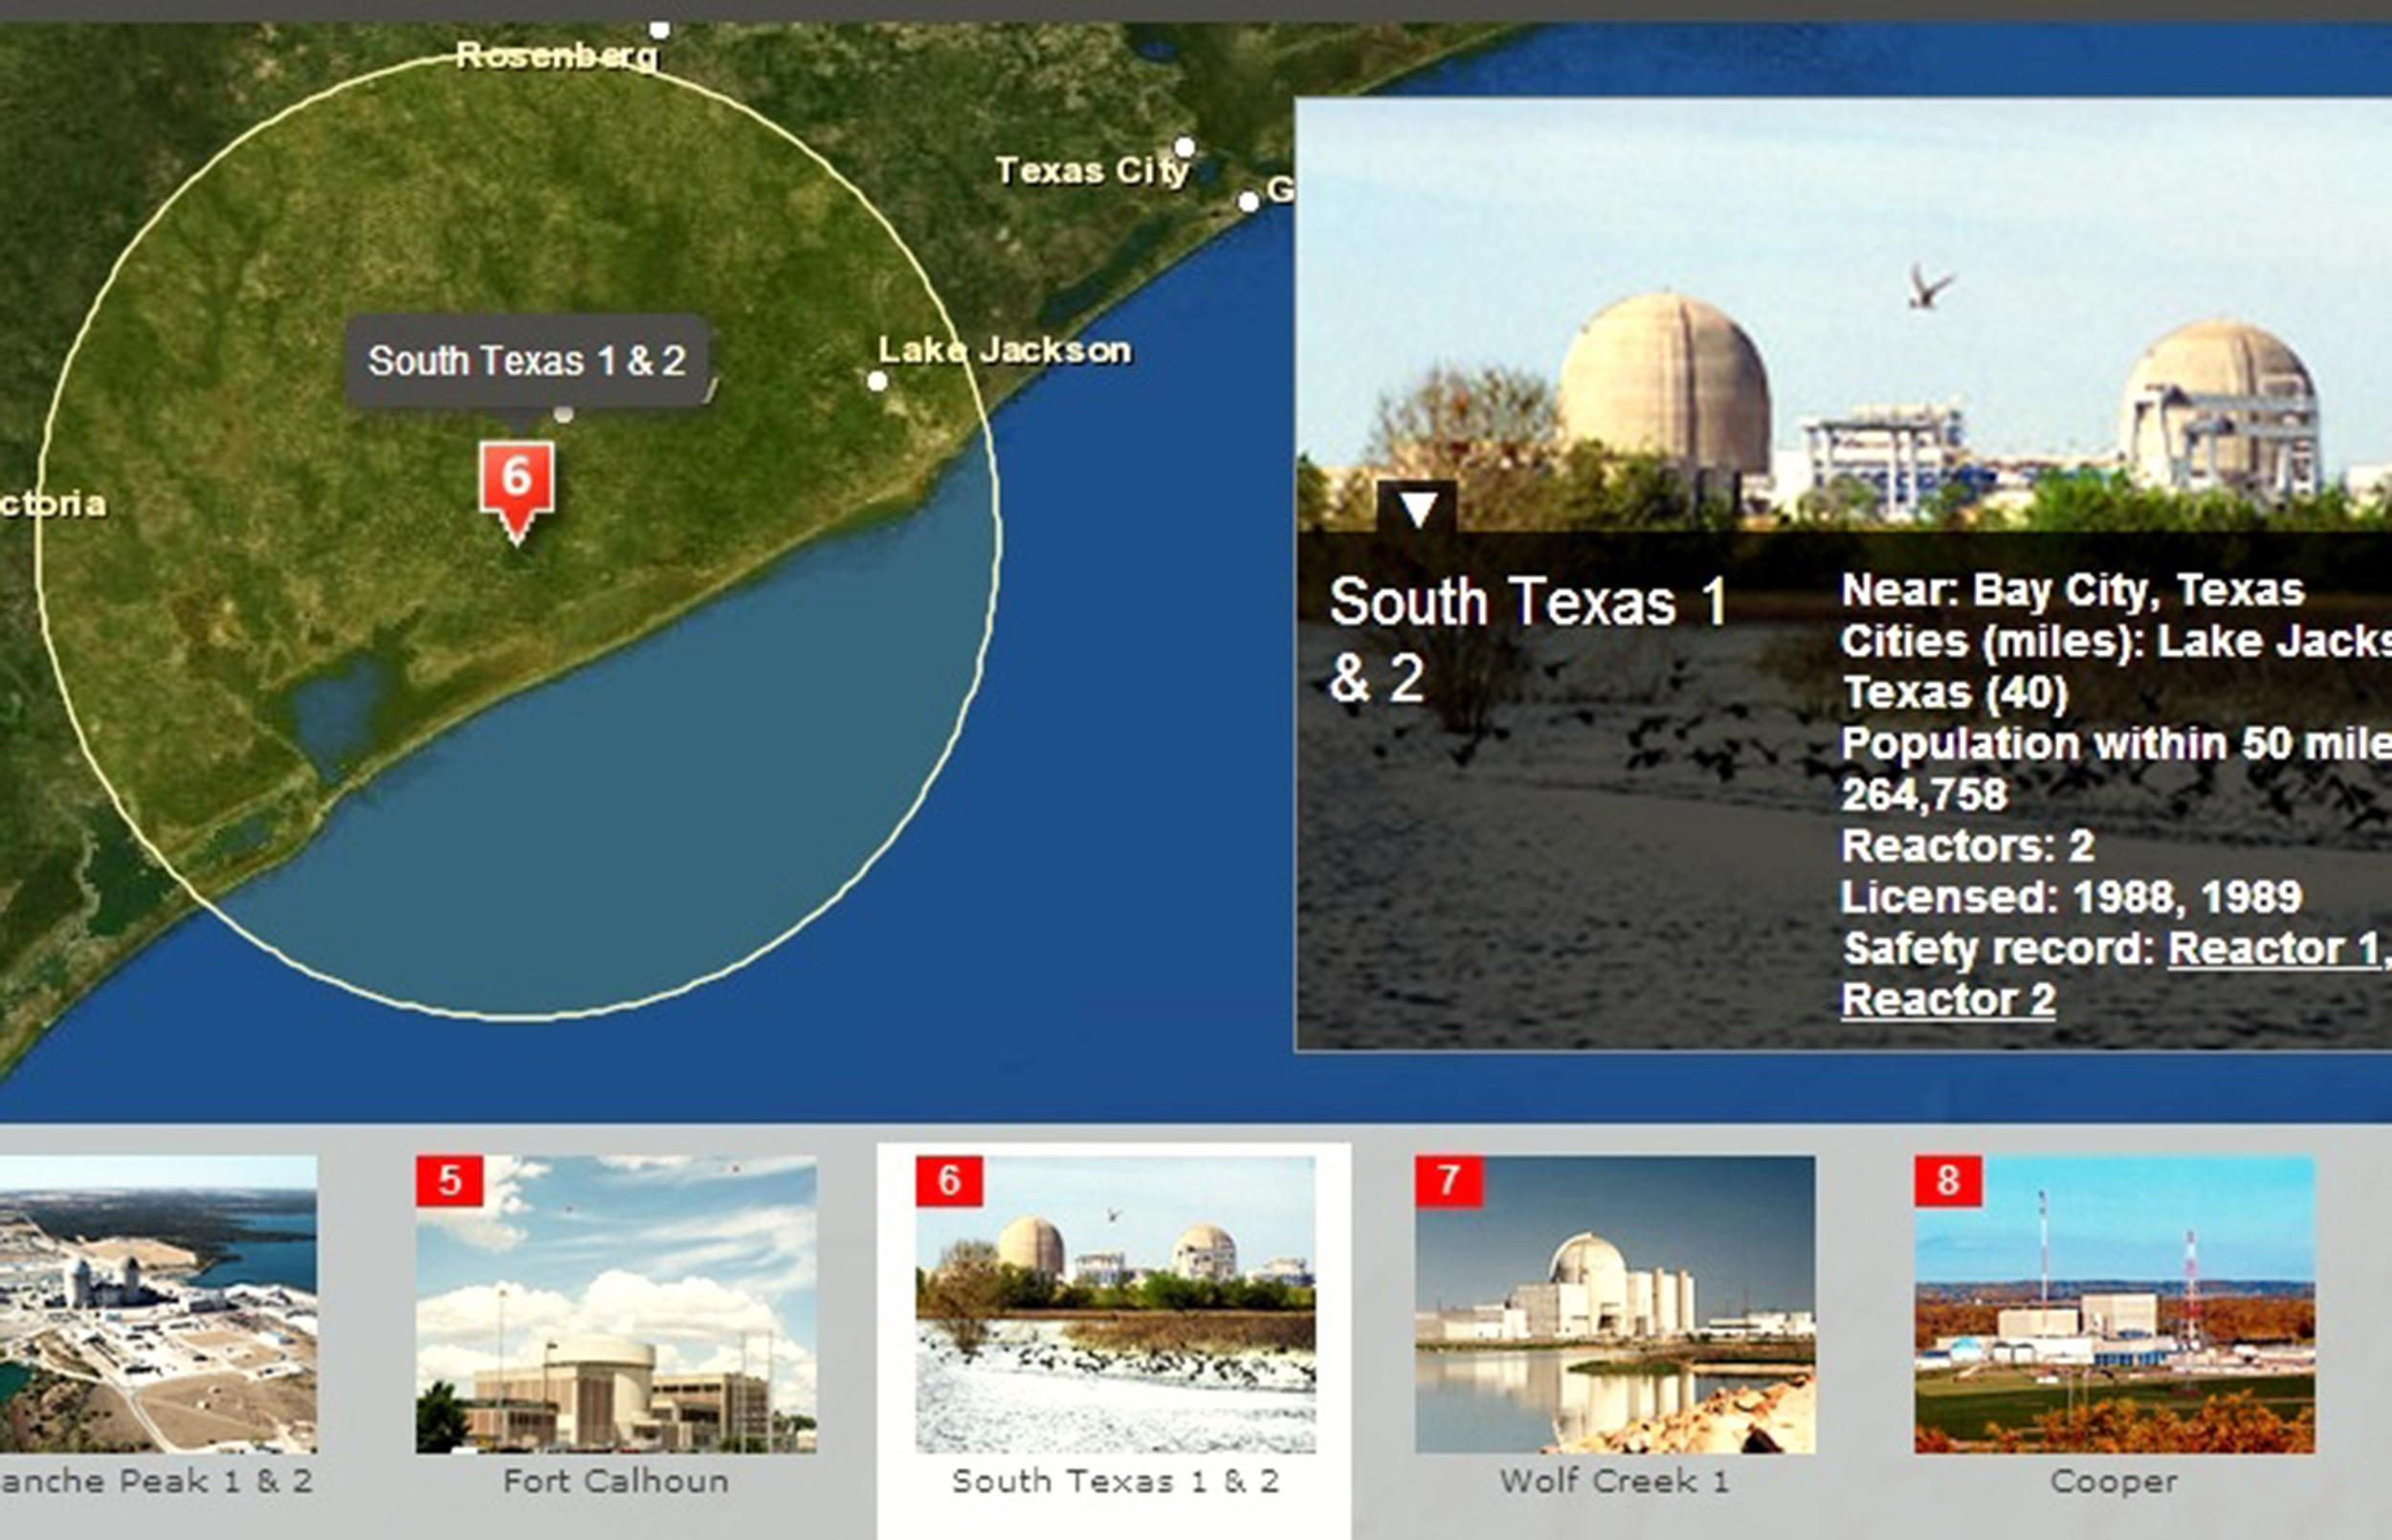 See details of the 62 U.S. nuclear power plants, along with their age and safety records.